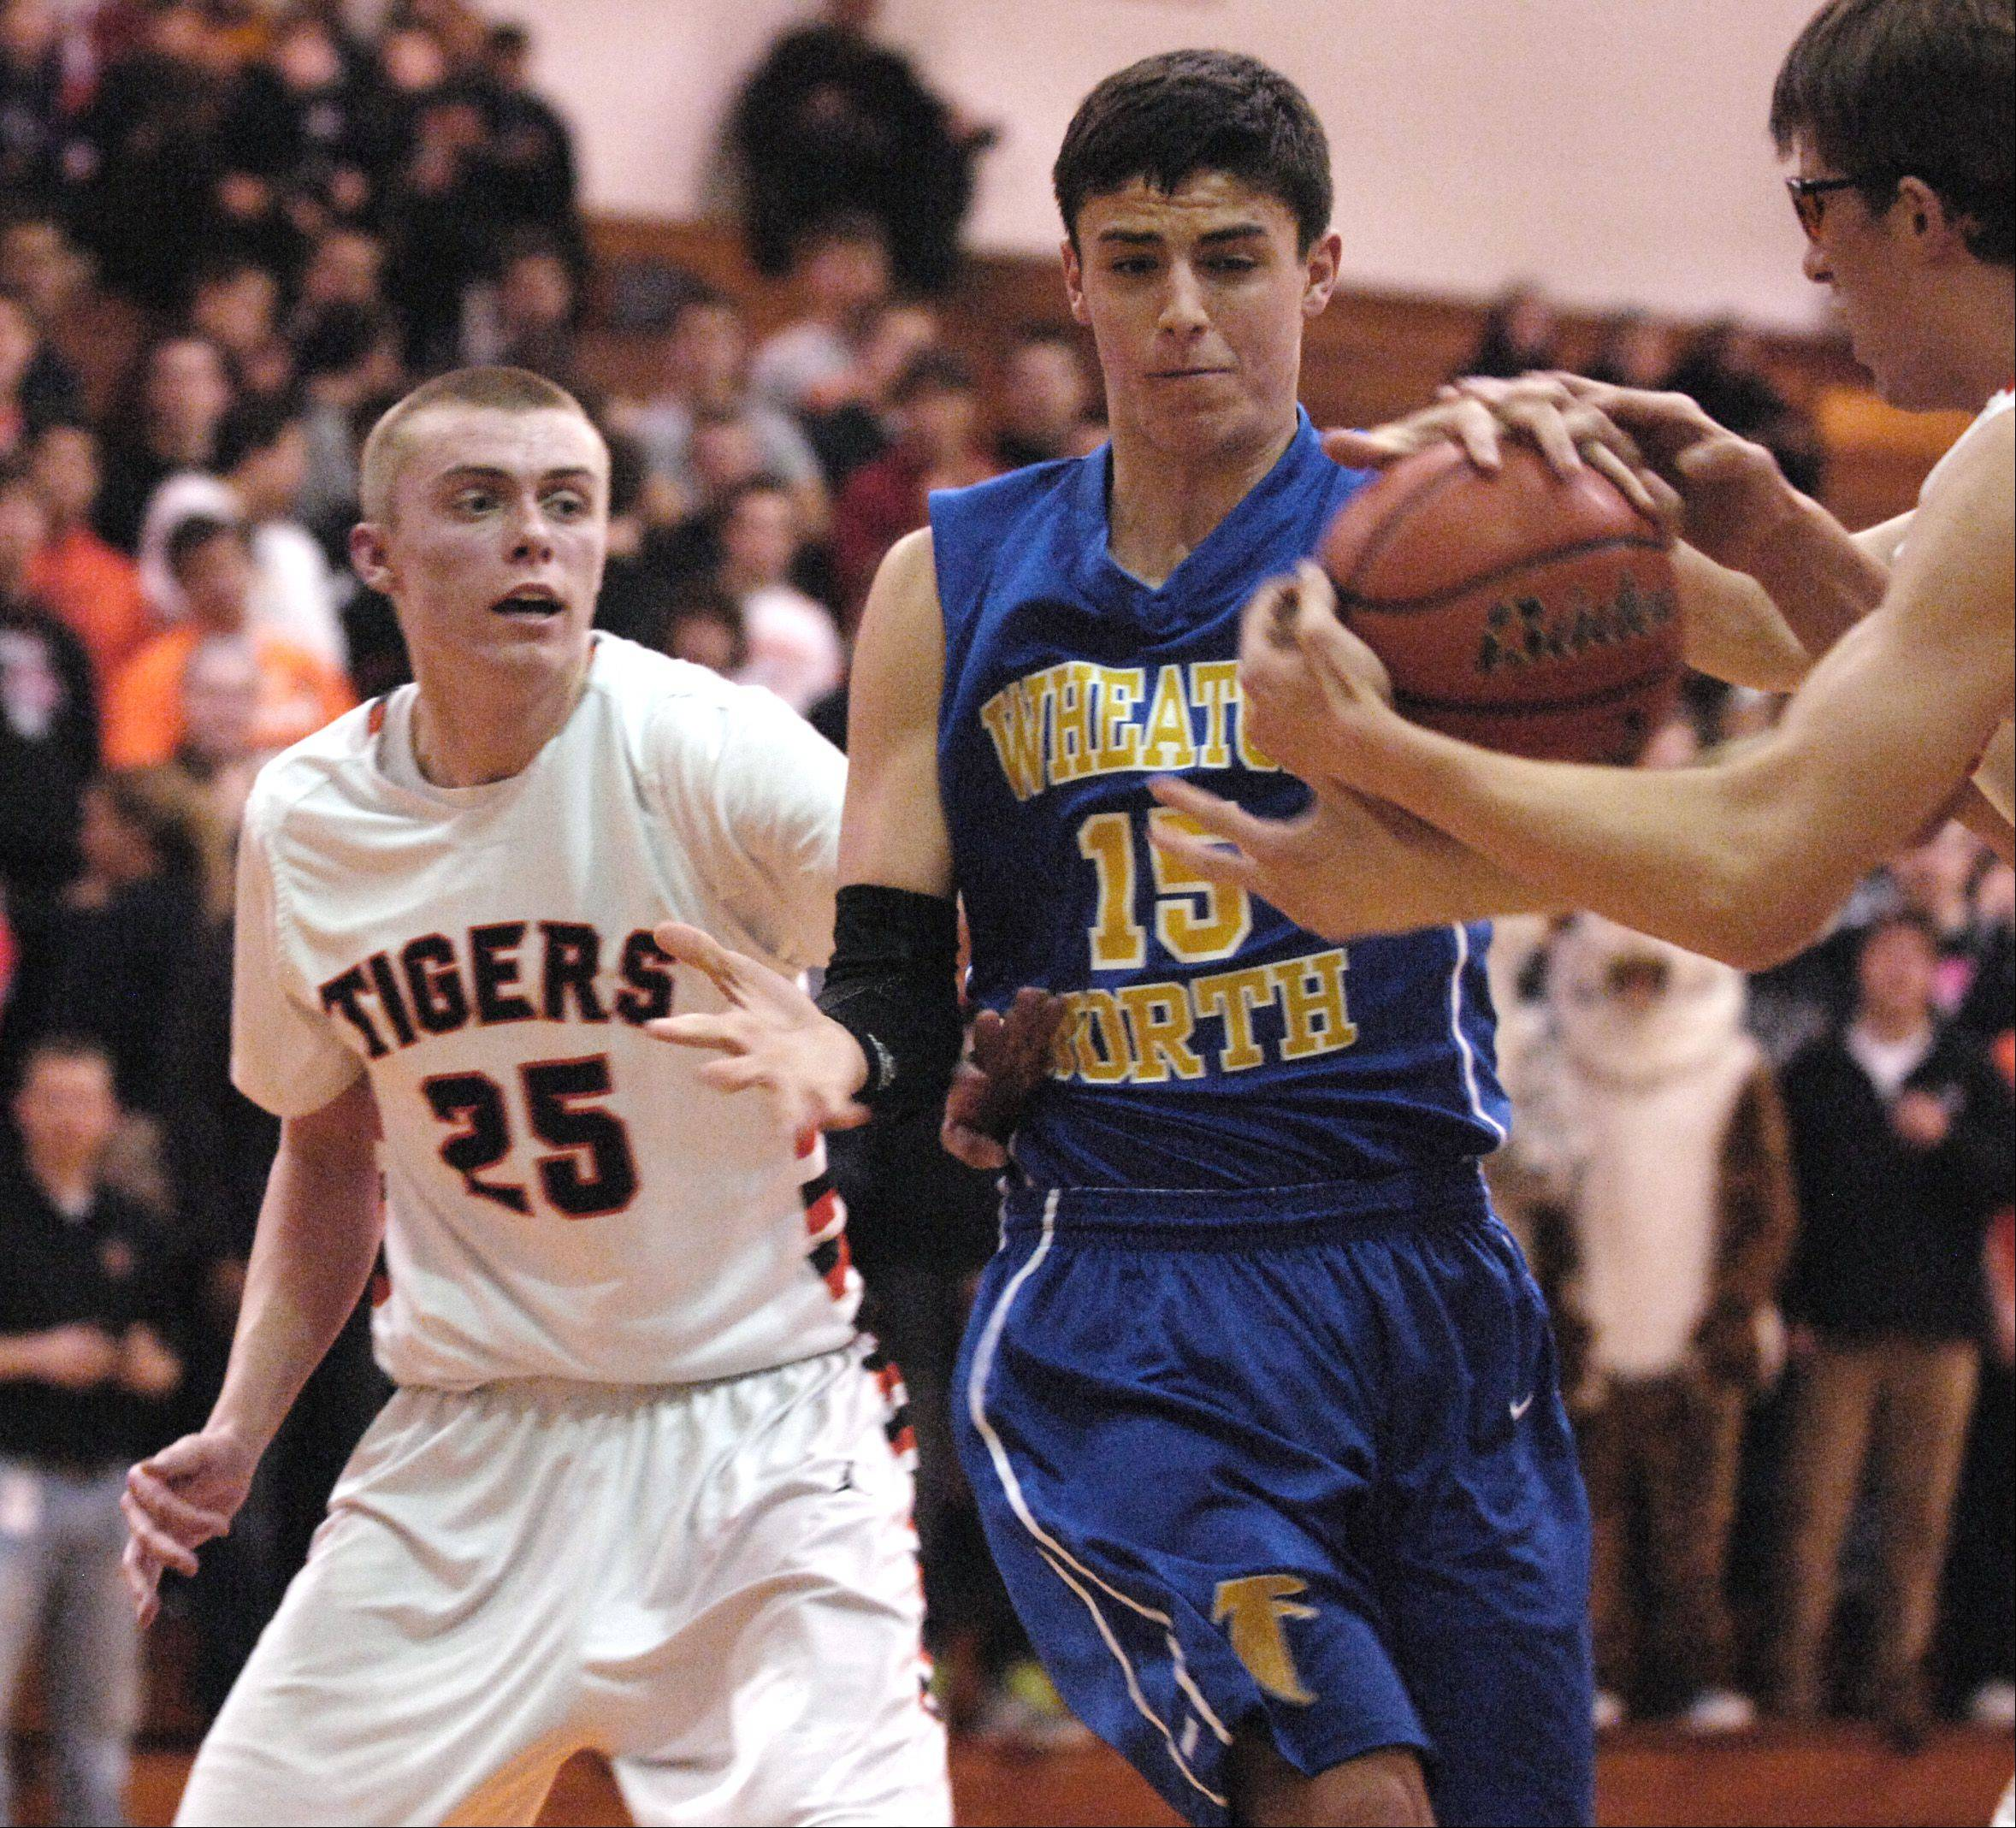 Michael Kramer of Wheaton Warrenville South and Mitch Vosberg of Wheaton North battle for control of the ball during boys basketball, Wednesday.